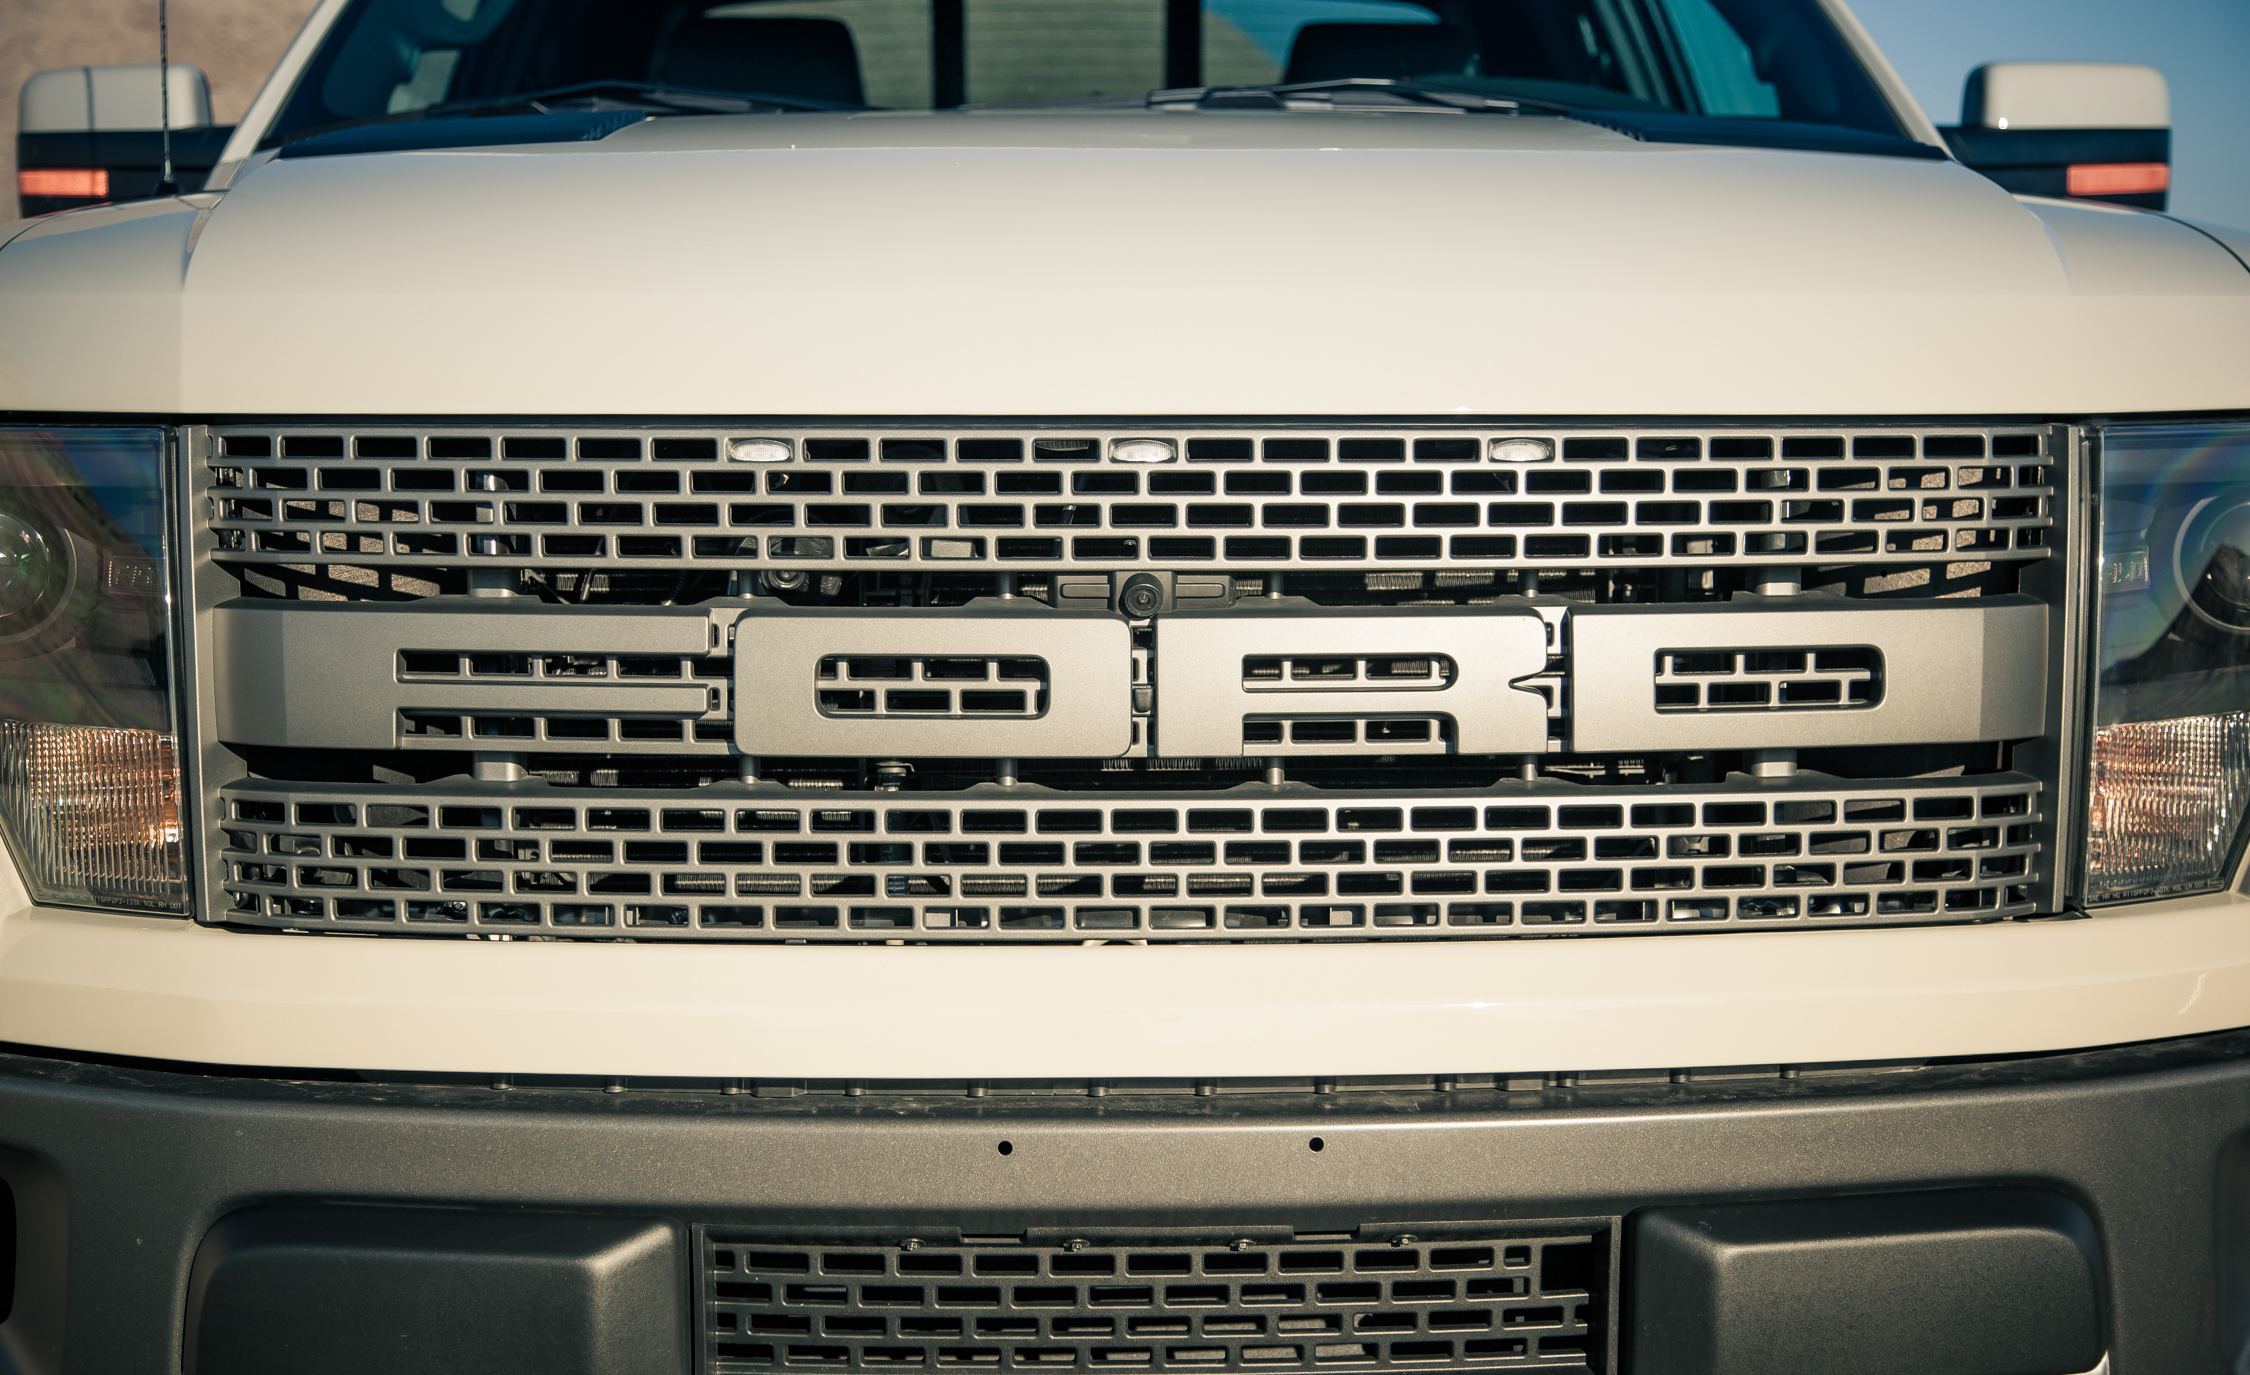 2013 Ford F 150 SVT Raptor Exterior View Grille (Photo 7 of 39)